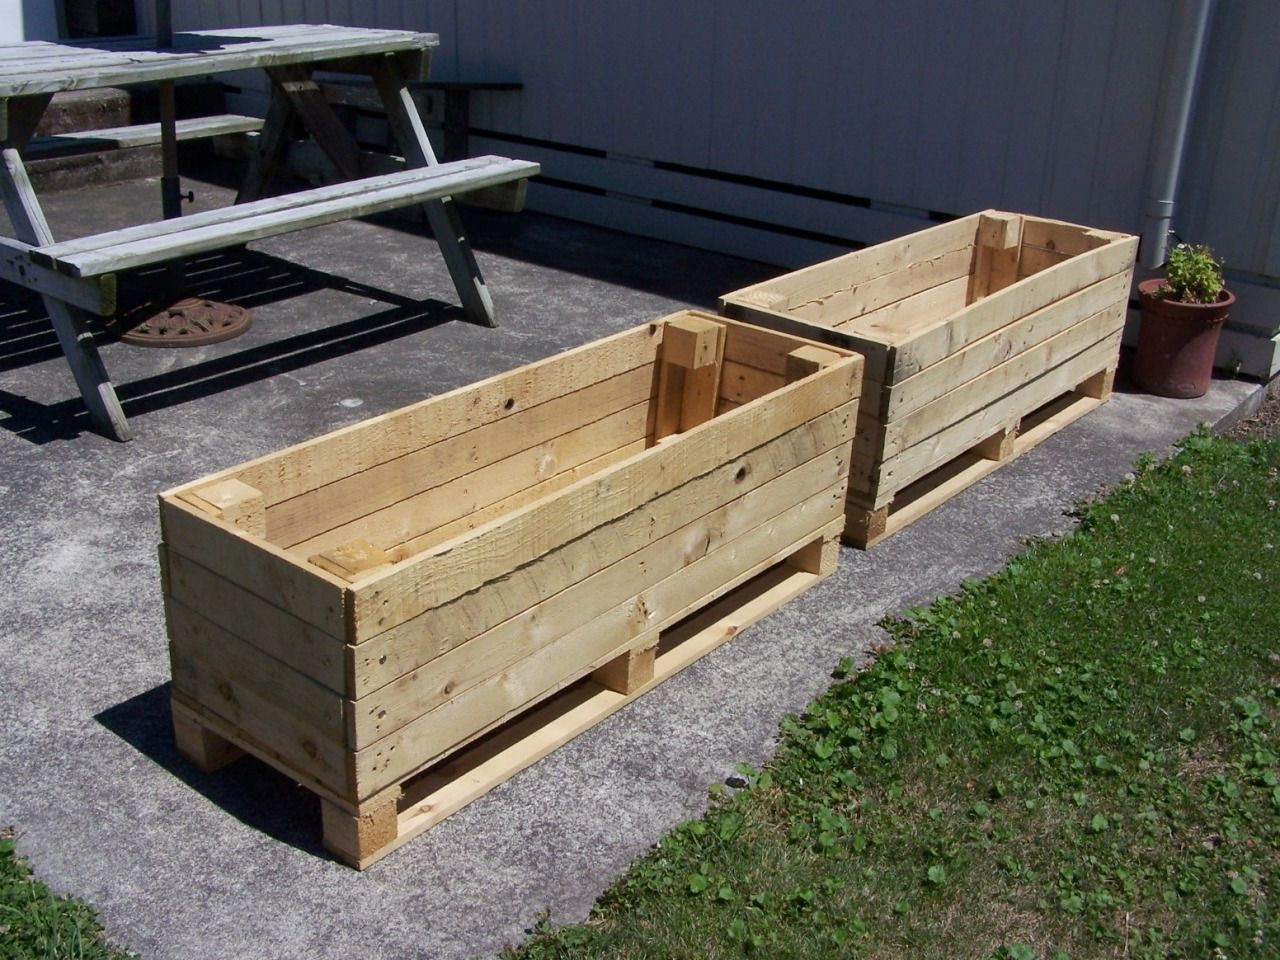 Boyfriend Two Planters Of Pallets Woohoo